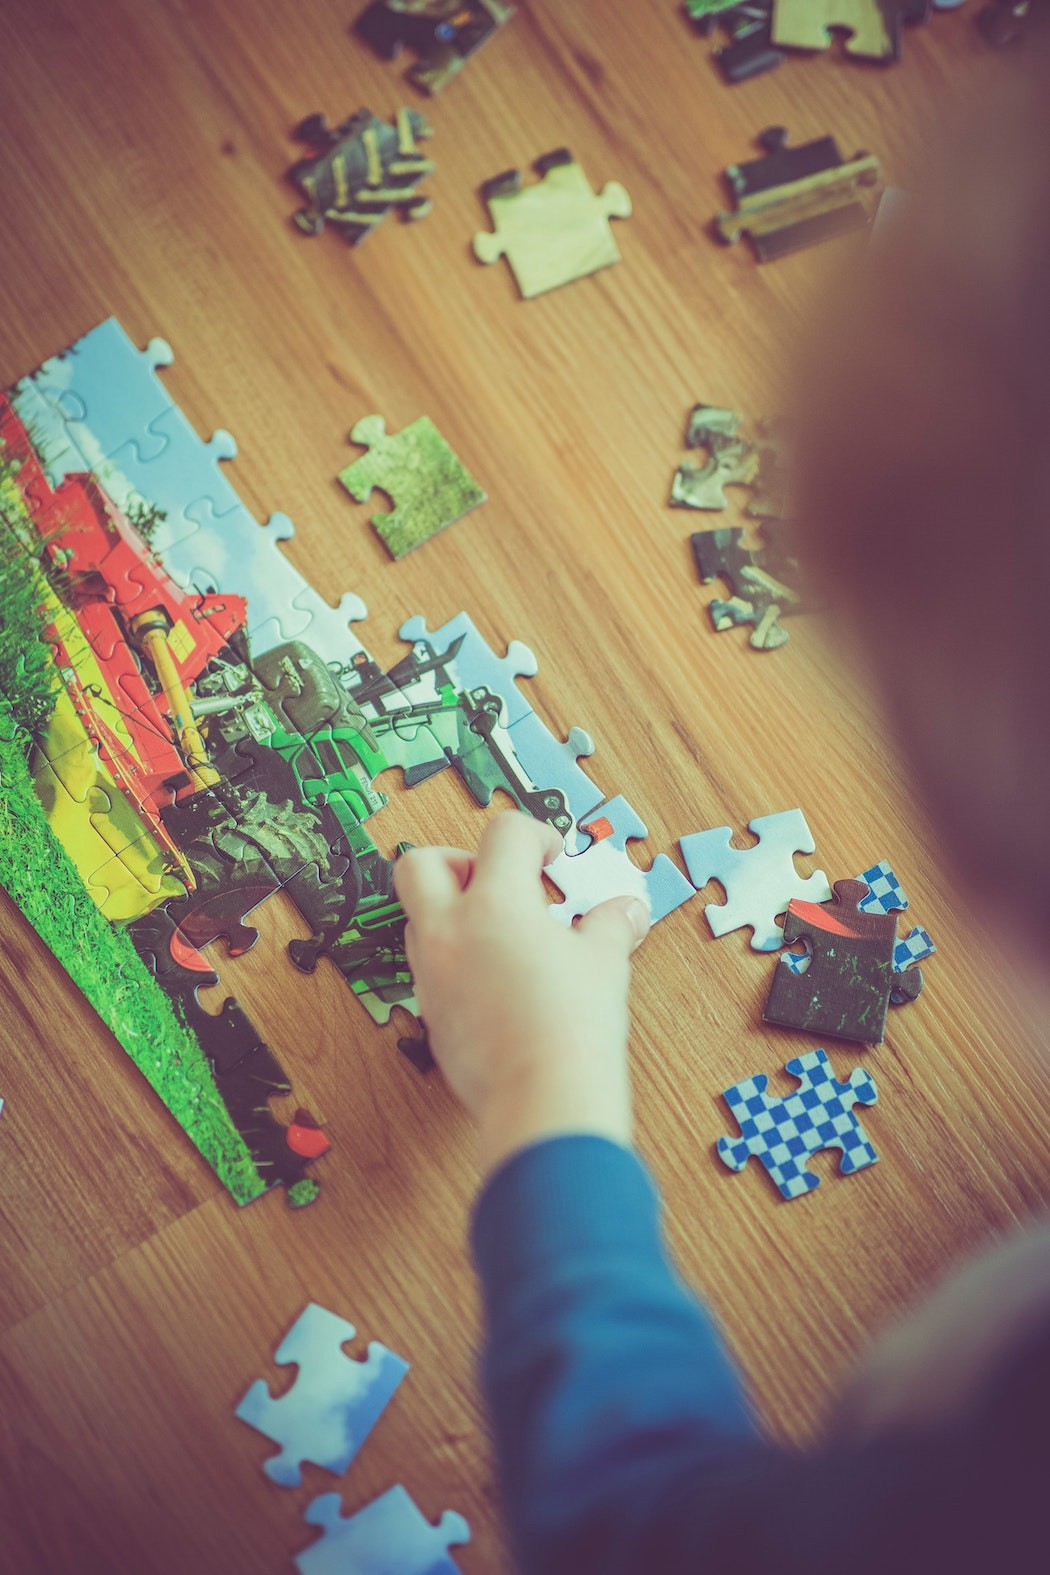 Child fitting pieces of a jigsaw puzzle